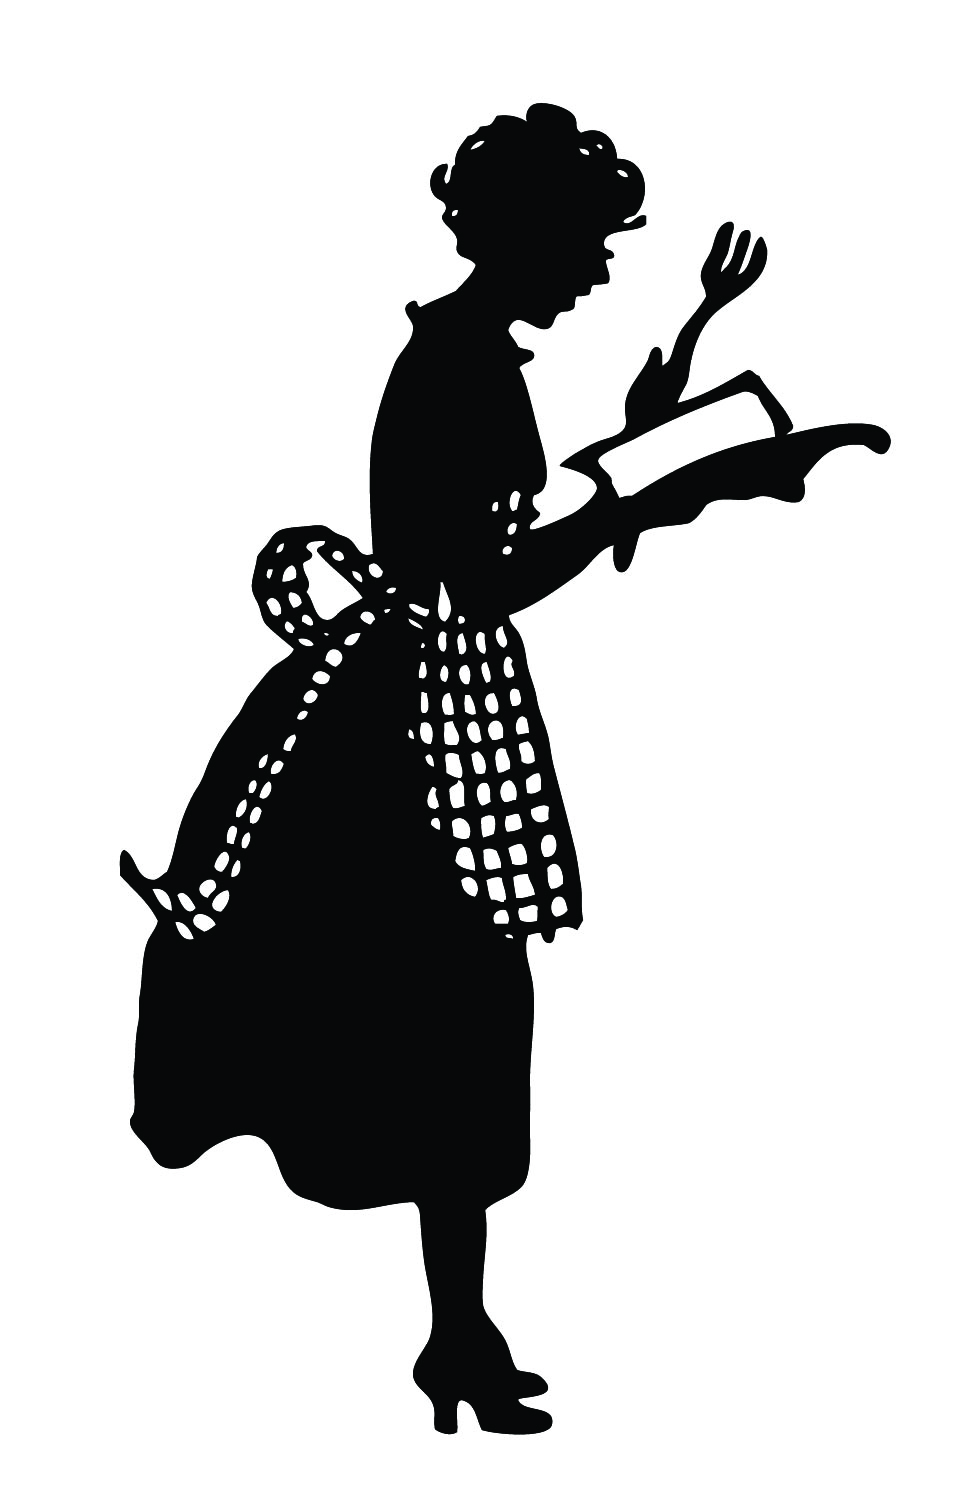 Vintige ladies silhouette clipart jpg free stock Vintage Silhouette - Cute Lady in Apron - The Graphics Fairy jpg free stock